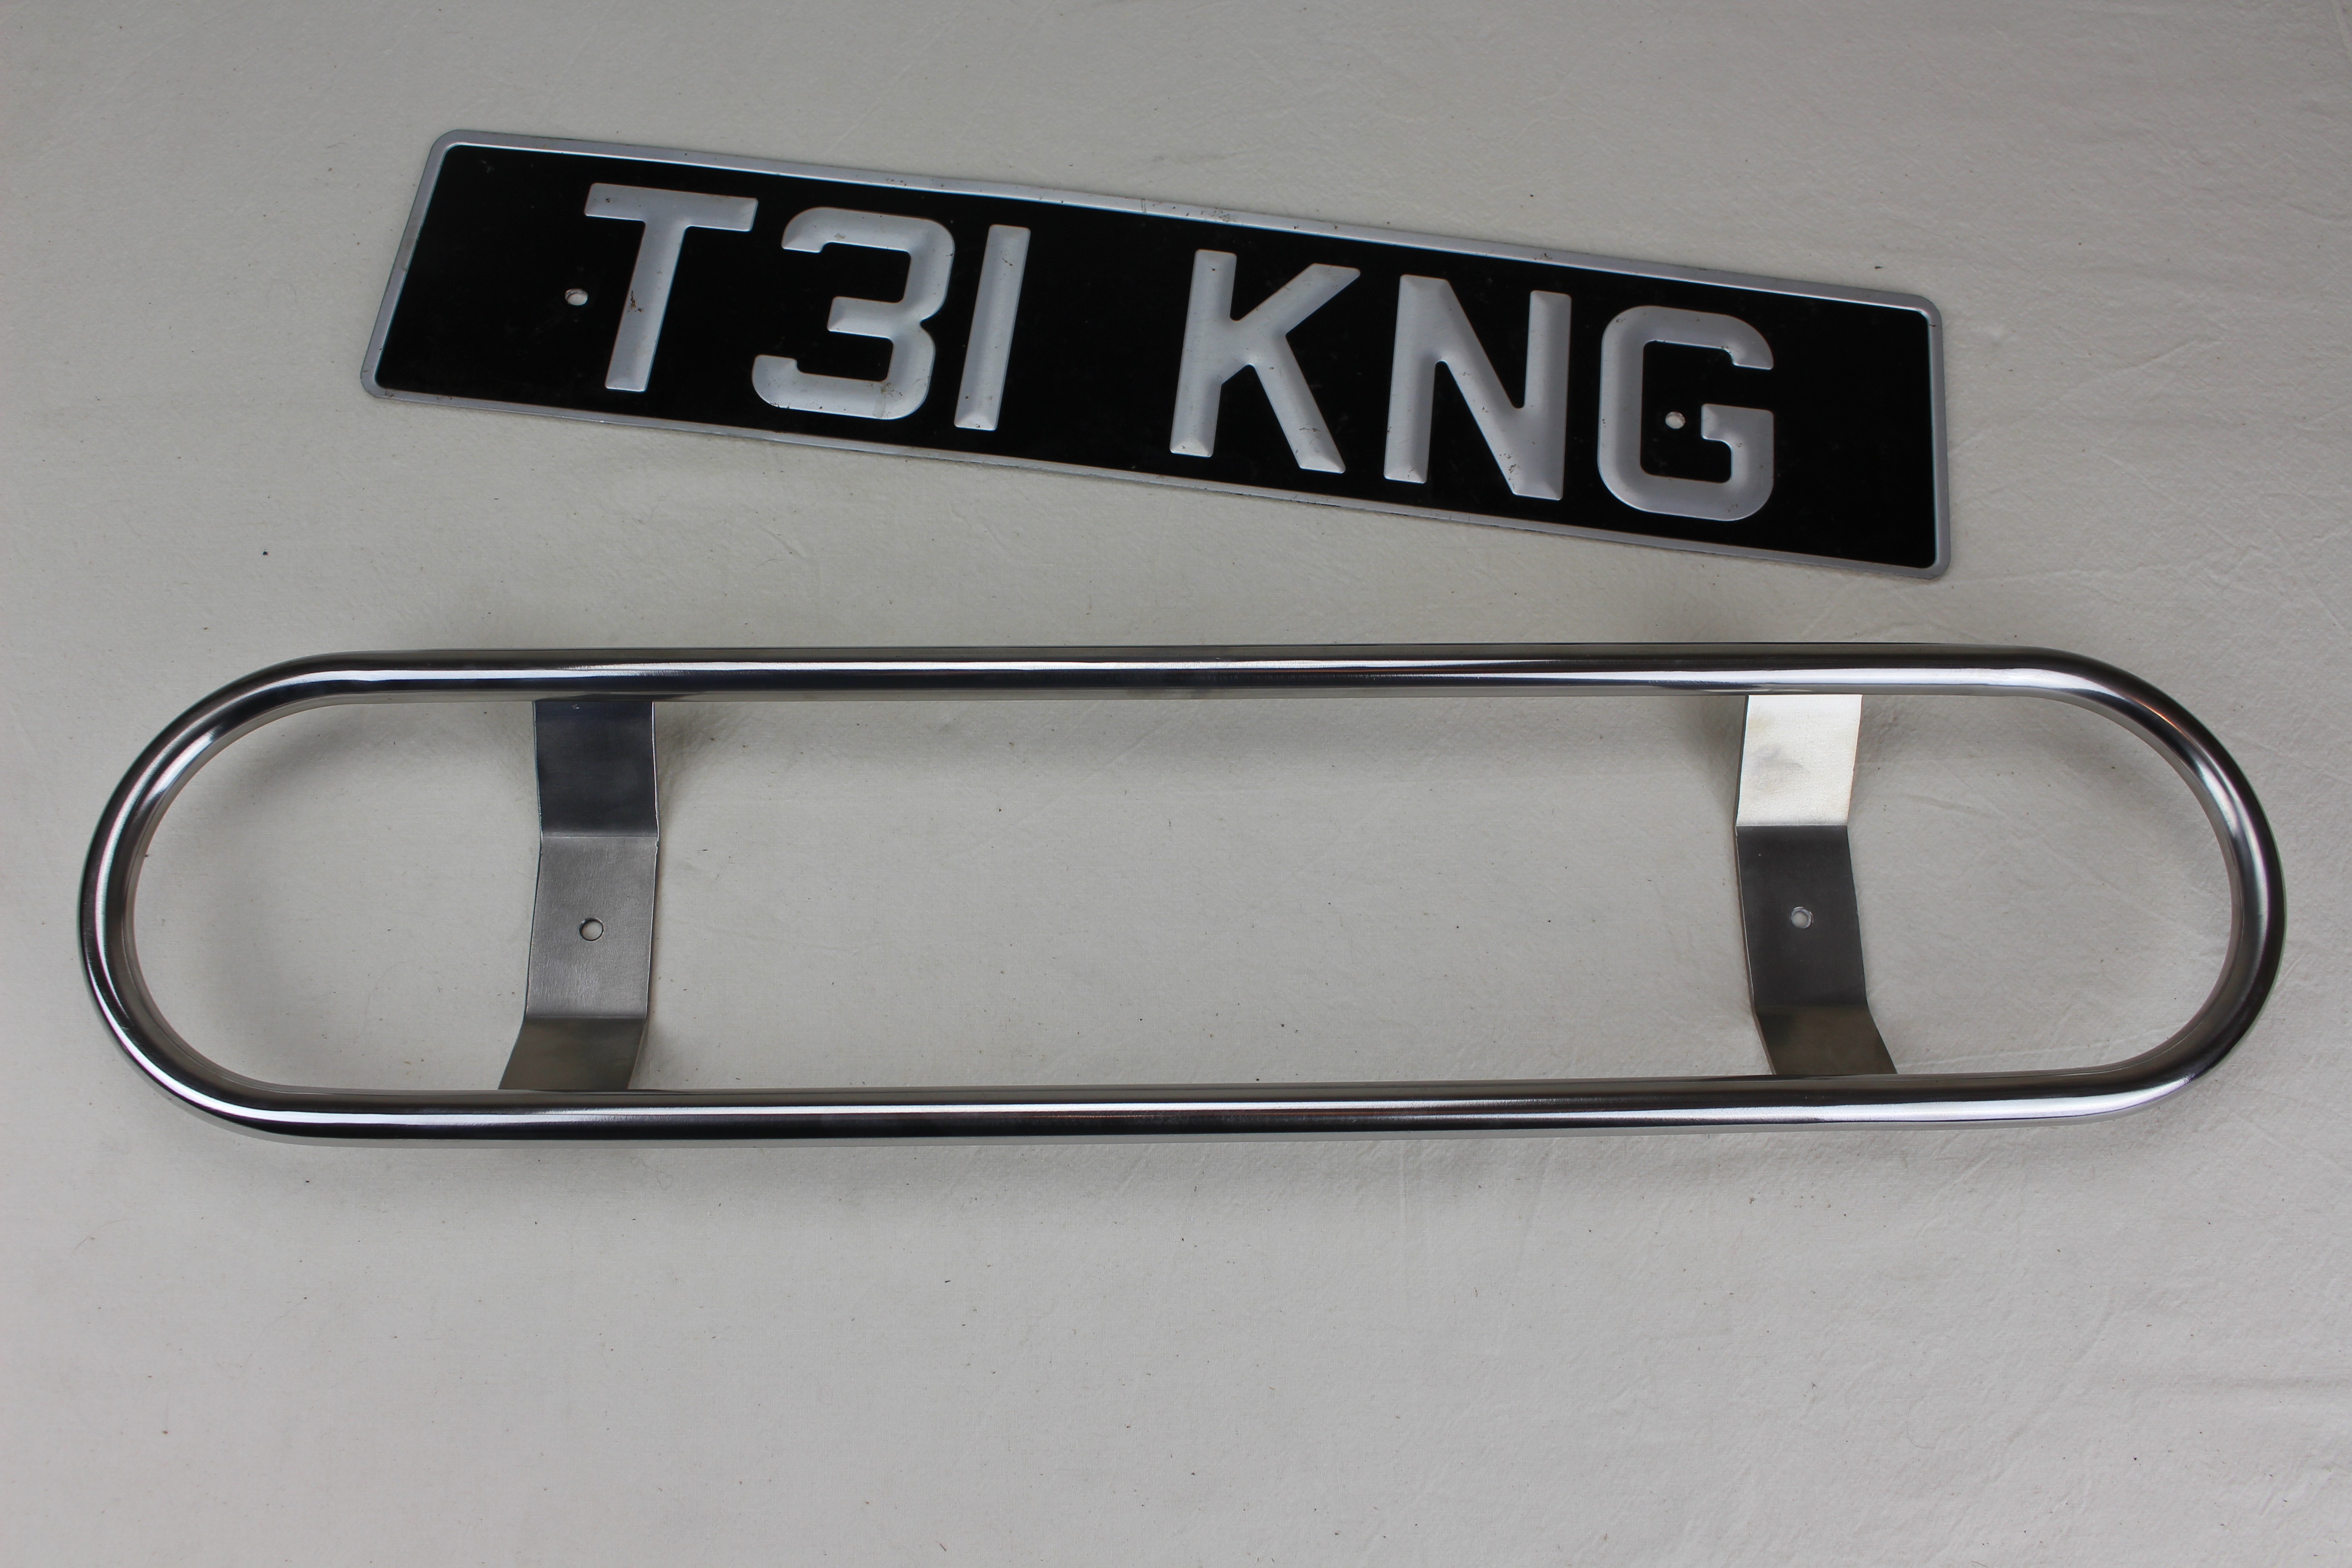 Badge bar, stainless steel, adaptable for all Triking models, accepts a std size number plate and or traditional _ classic type auto badges. Number plate shown for illustration purposes only.